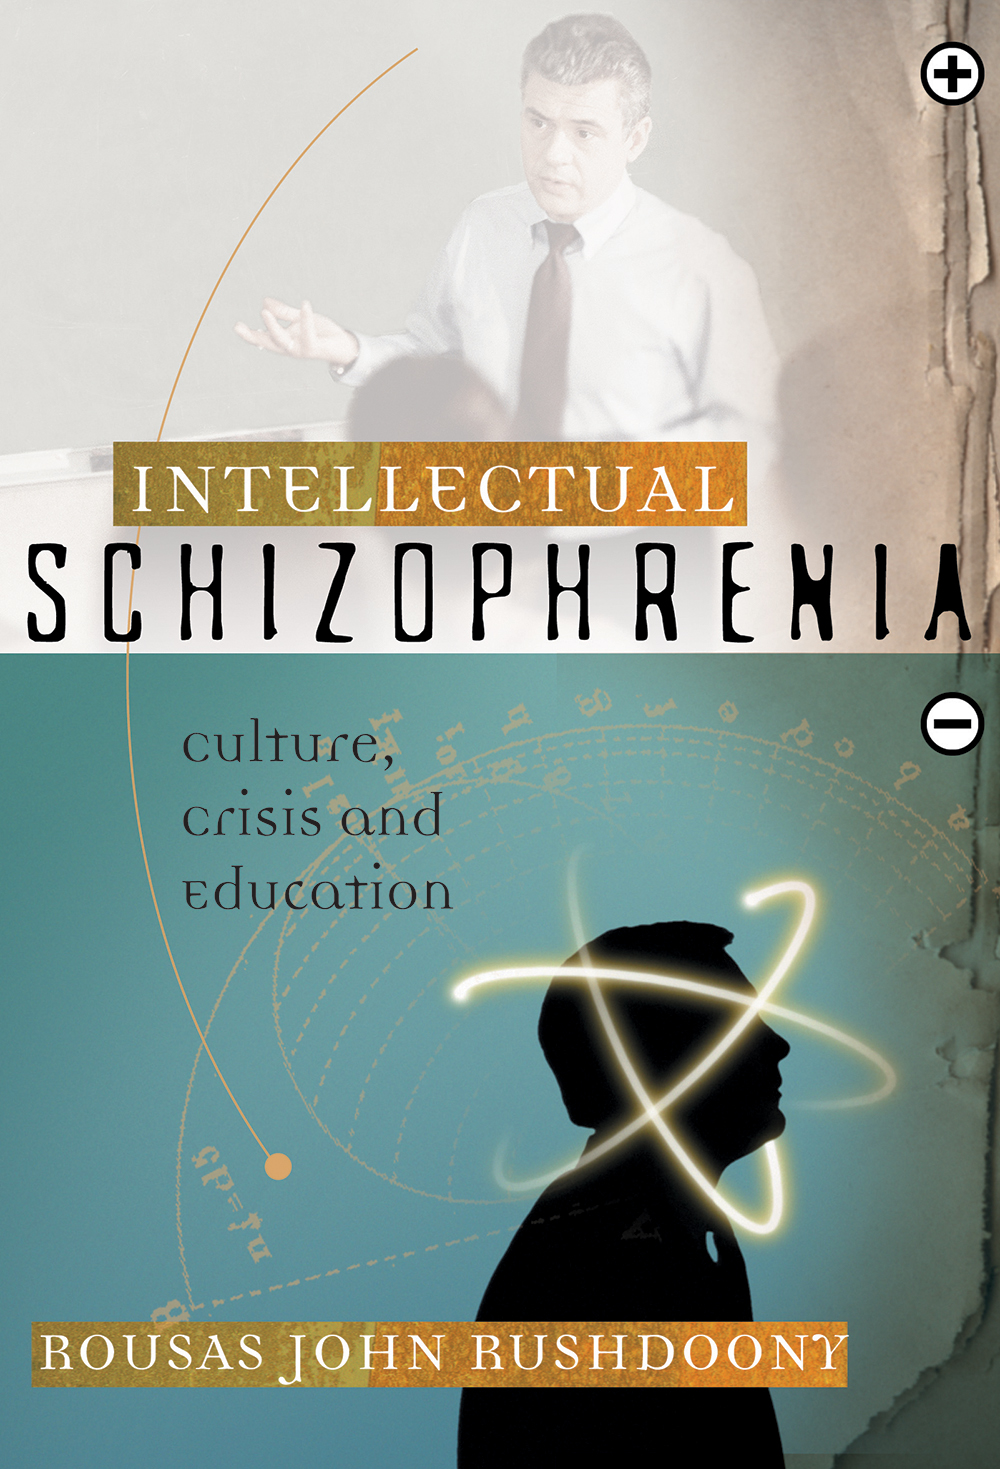 Intellectual Schizophrenia